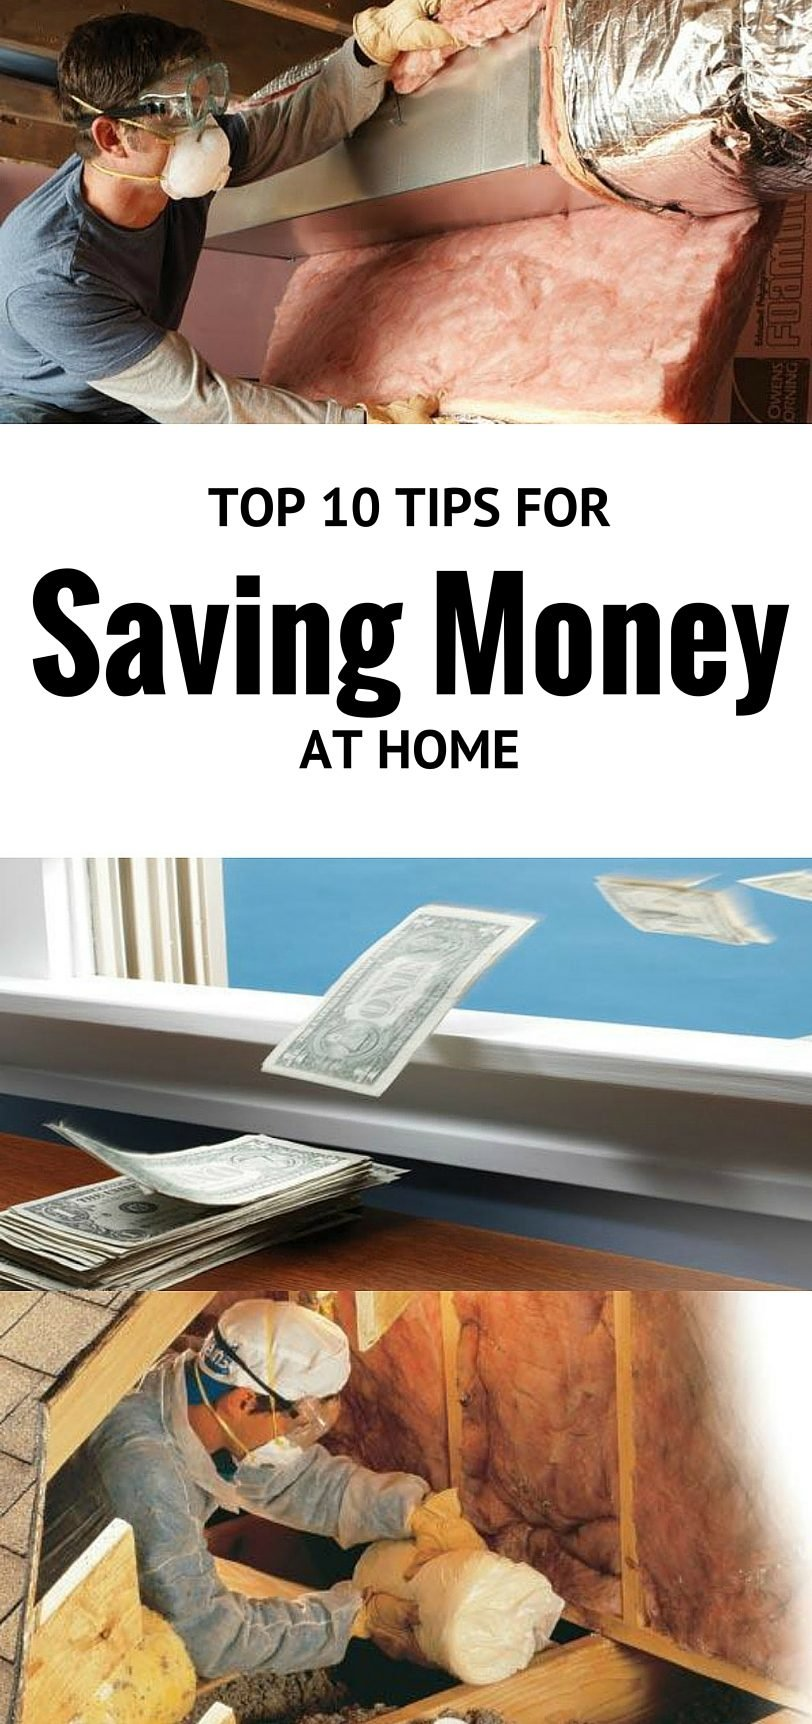 The Top 10 Tips For Saving Money At Home The Family Handyman